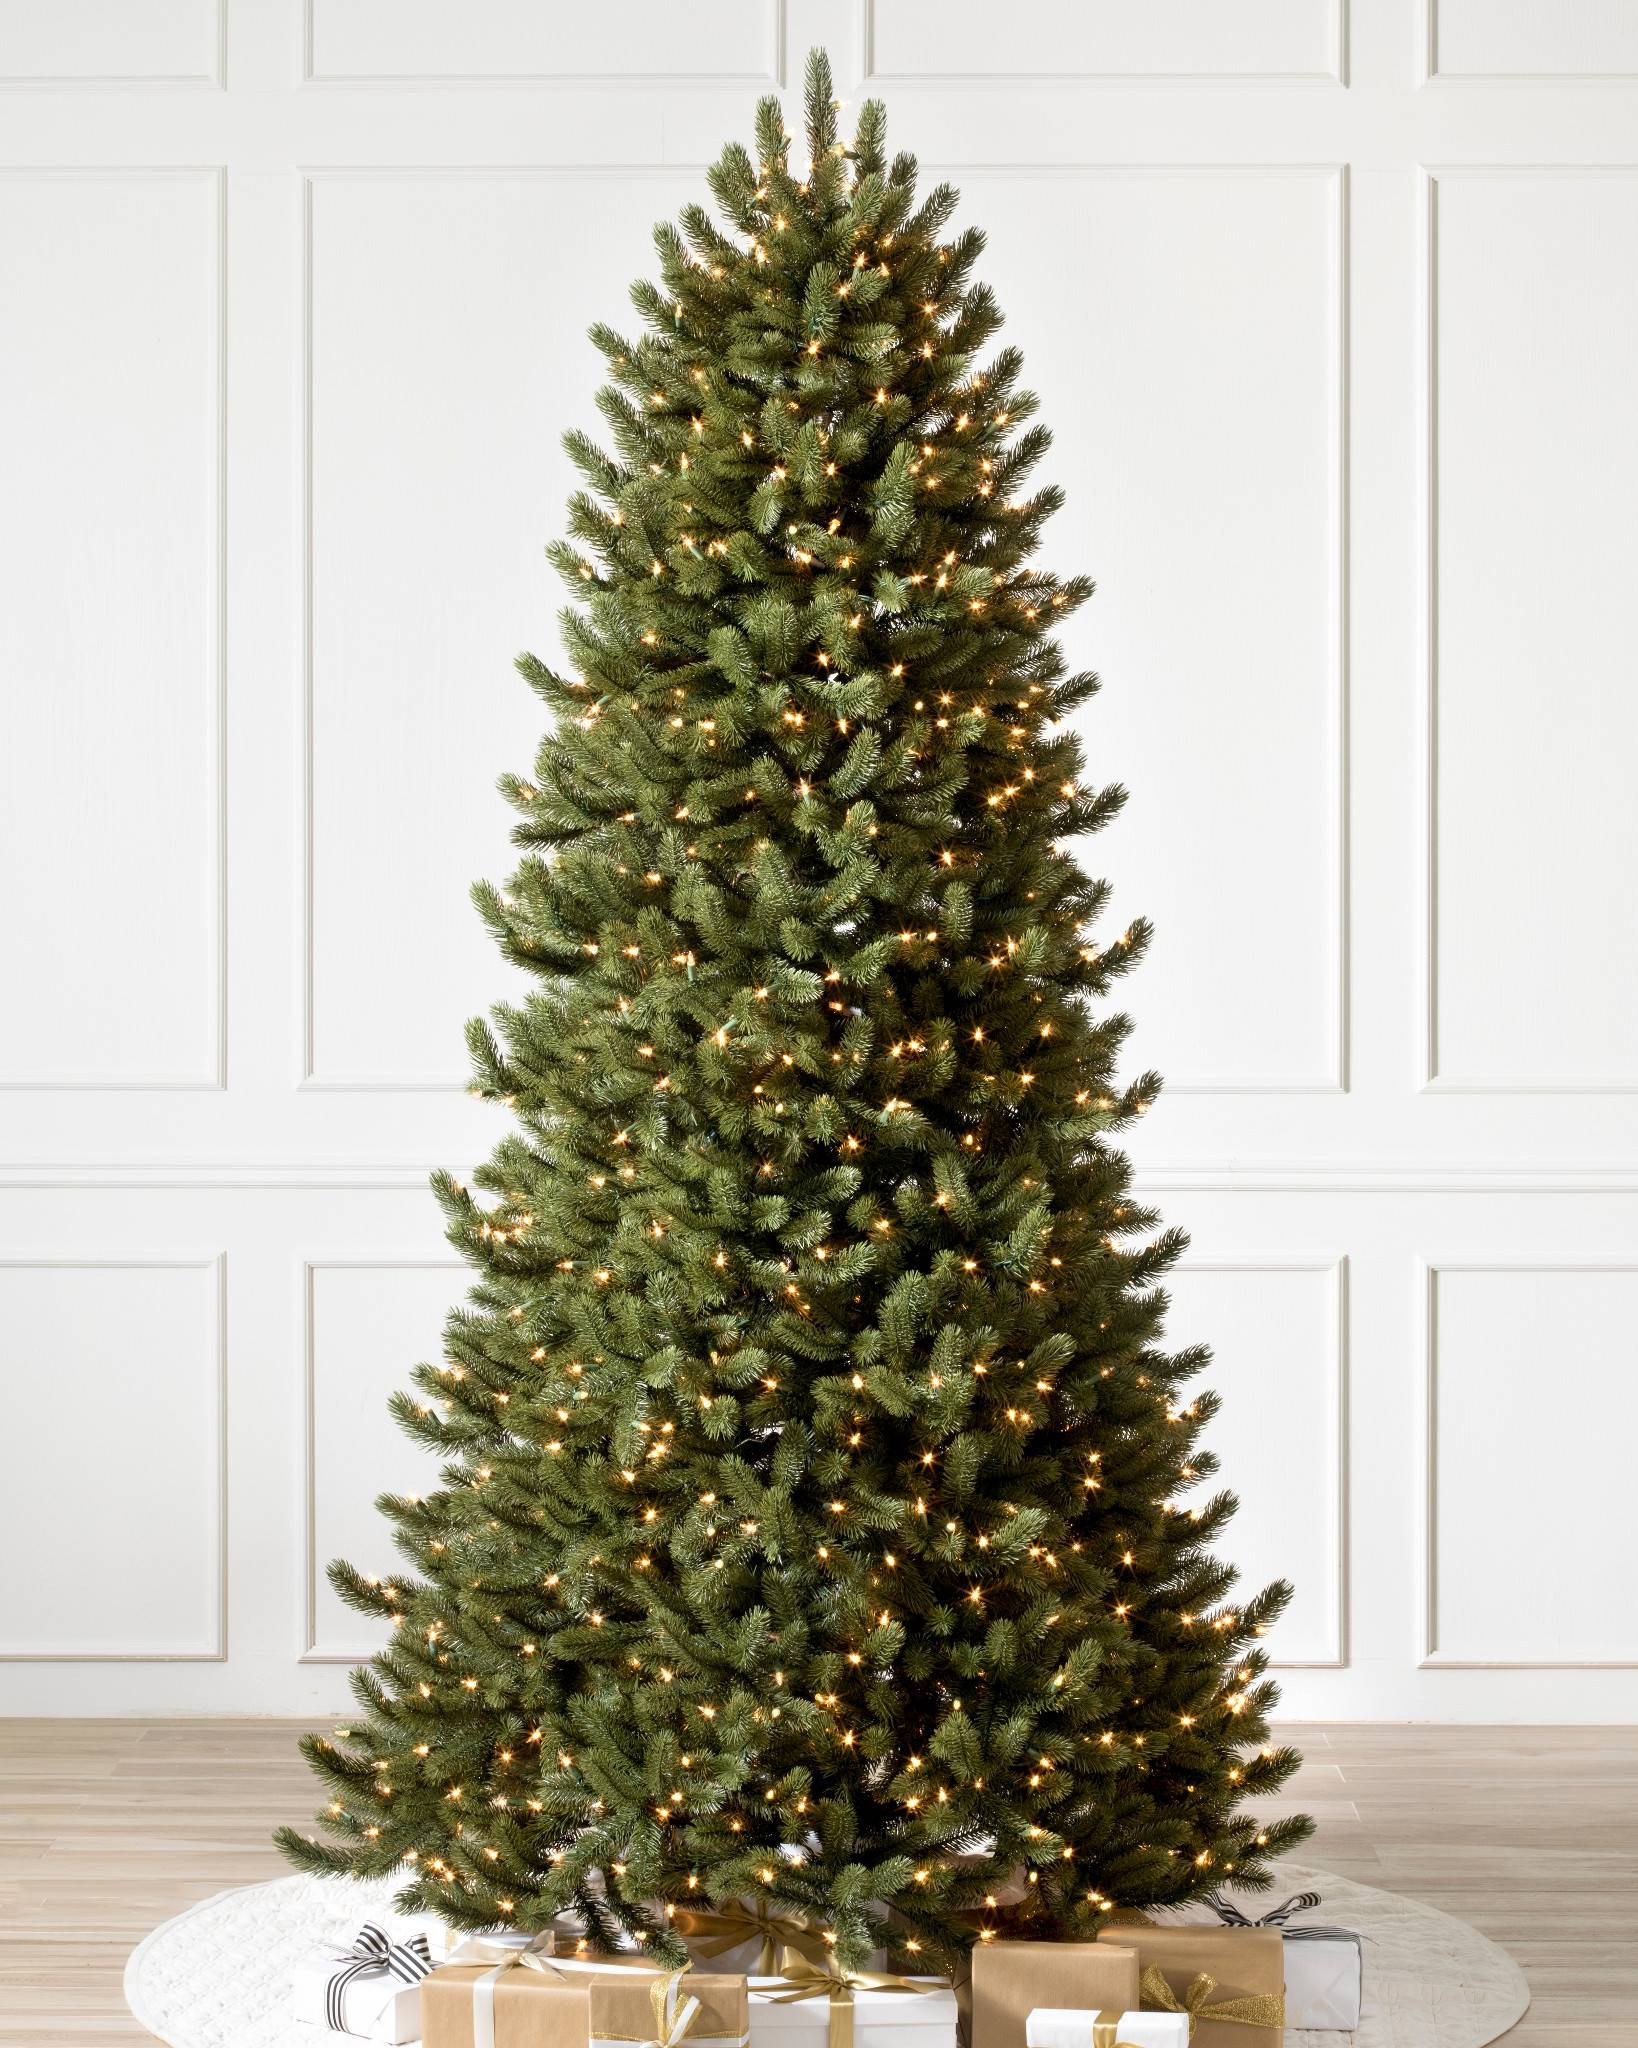 Vermont White Spruce Narrow 11 Candlelight Led Lights